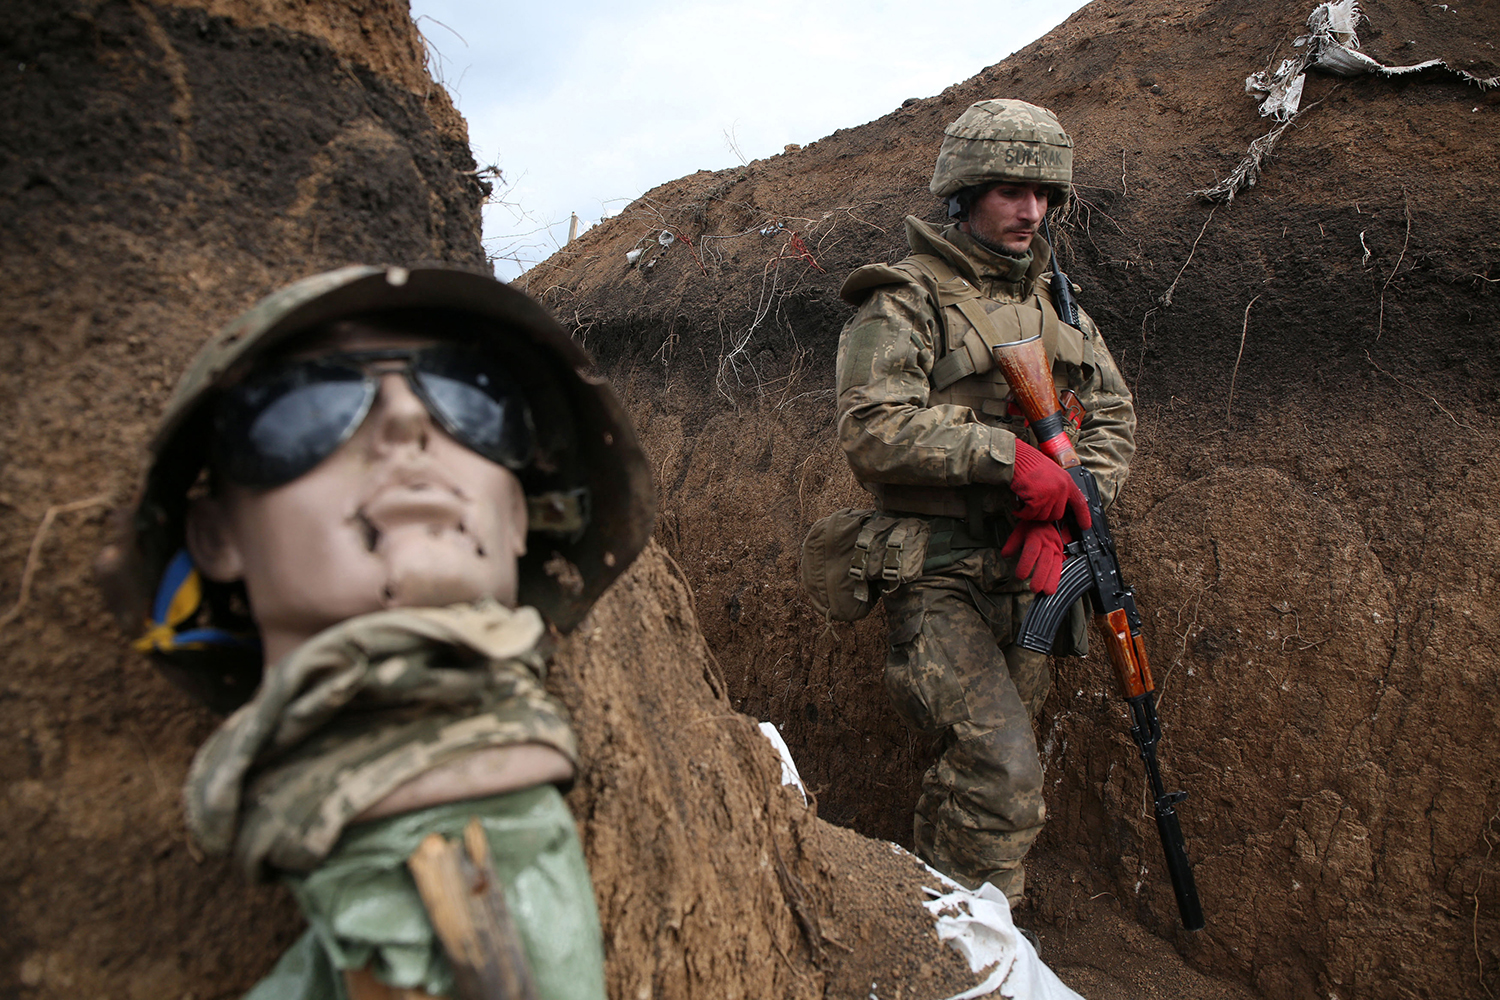 A Ukrainian serviceman walks in a trench near a mannequin as he works his post on the front line with Russia-backed separatists near the town of Zolote, Ukraine, on April 8. STR/AFP via Getty Images